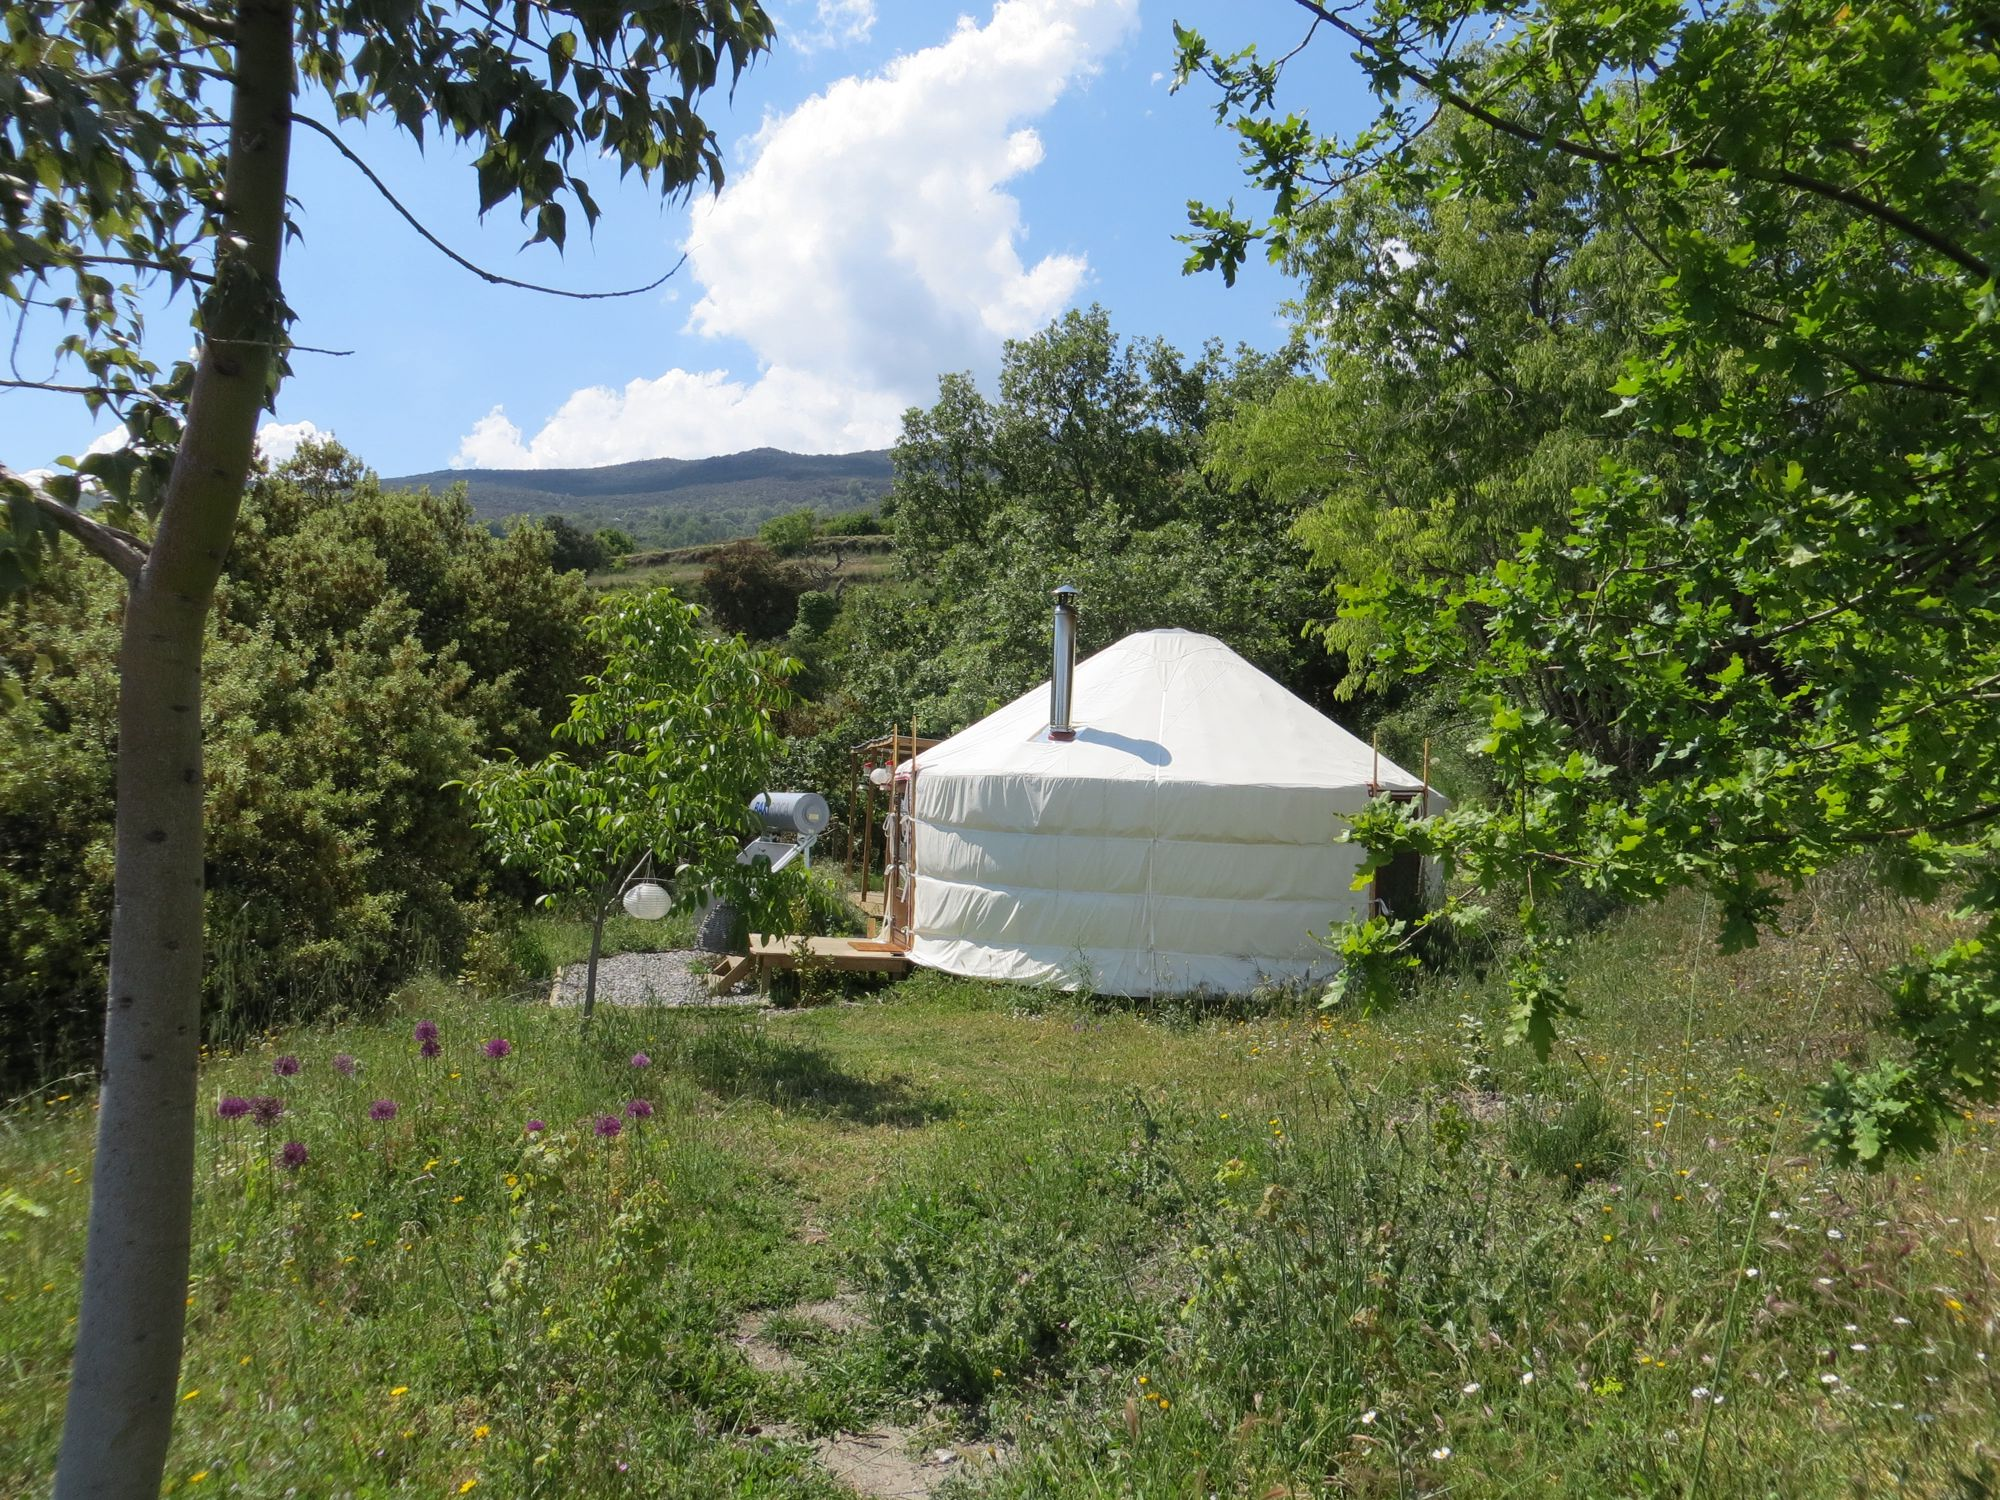 Glamping in Spain holidays at Cool Camping